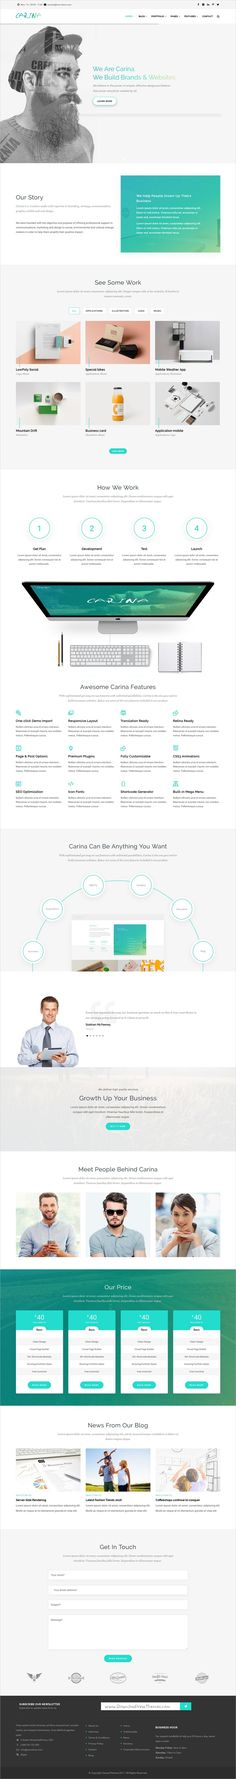 Buy Carina - Creative Multipurpose Drupal Theme by gavias on ThemeForest. Carina theme is Creative and professional business Drupal theme with fuly responsive design. Portfolio Format, Web Technology, Drupal, Site Design, Web Design Inspiration, Website Template, Templates, Business, Creative